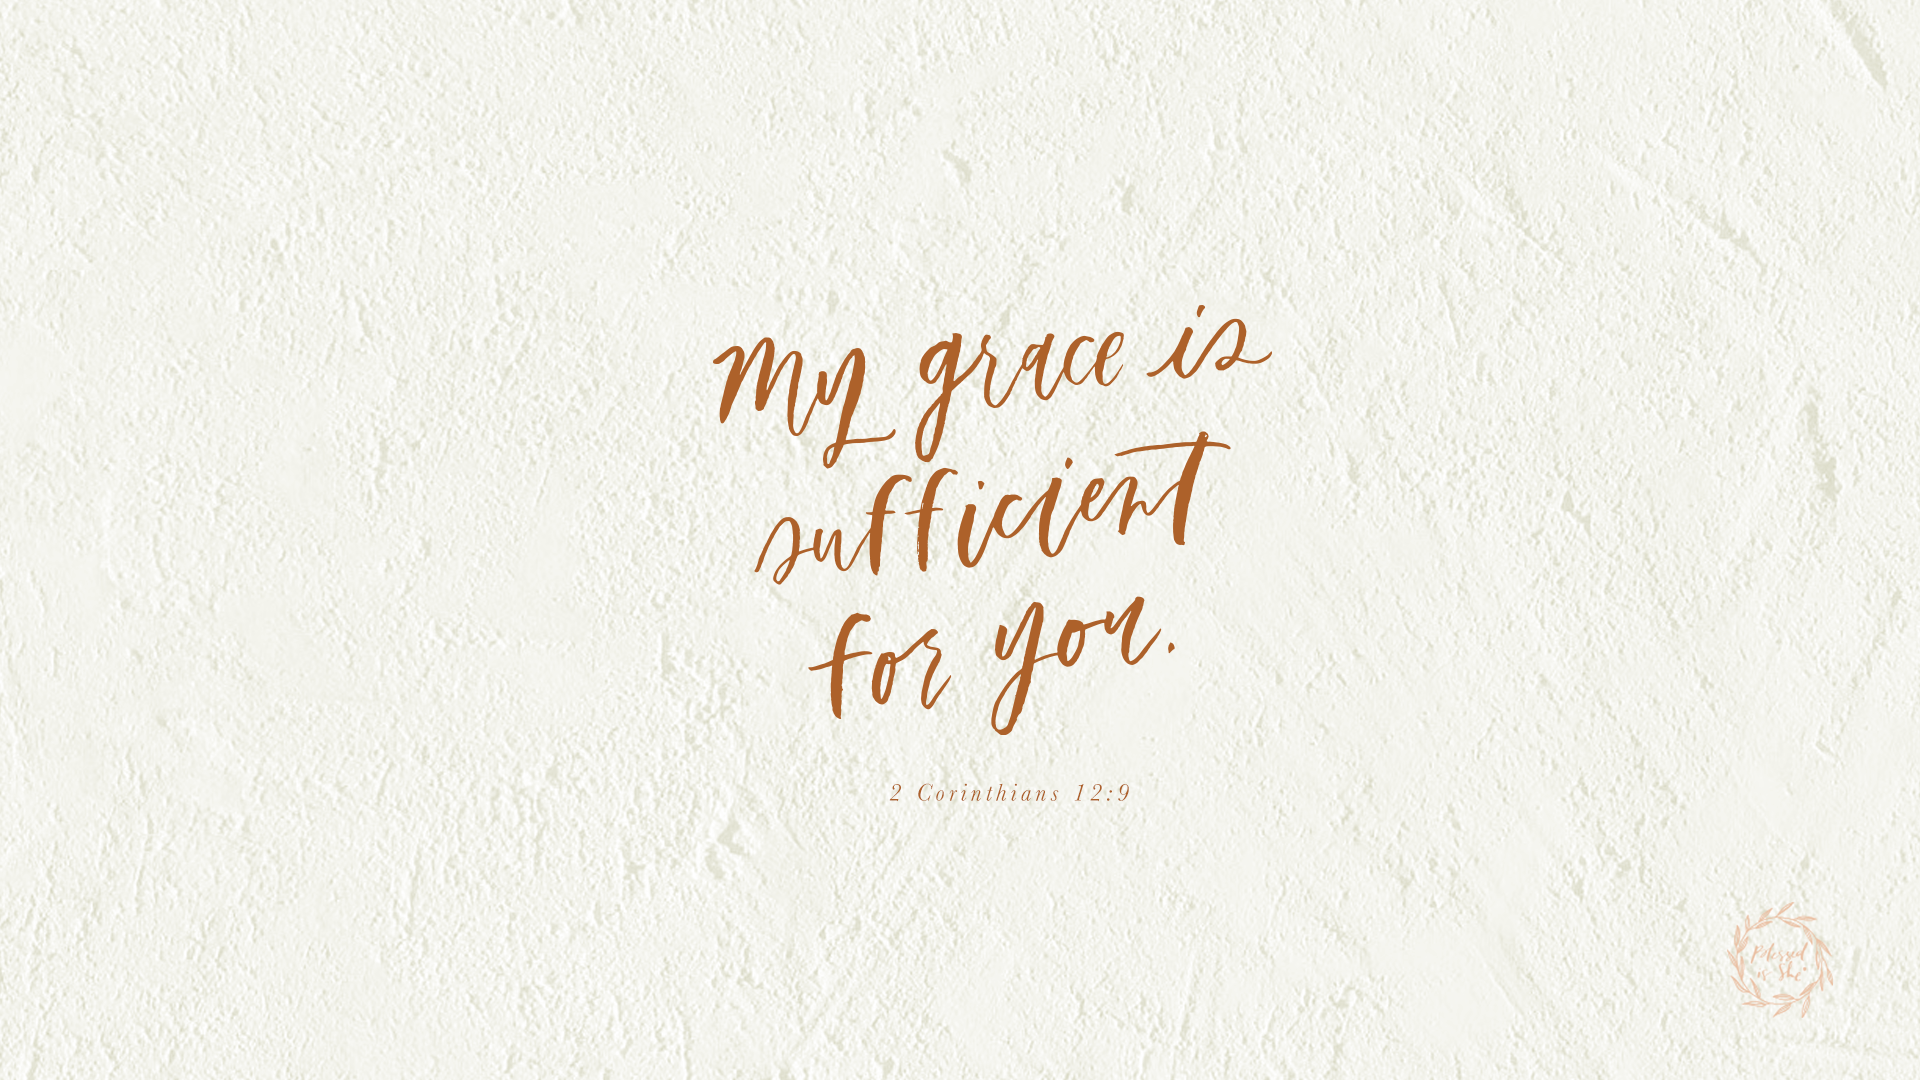 Minimalist Desktop Wallpaper Hd Bible Verse In 2020 Bible Verse Desktop Wallpaper Desktop Wallpaper Quotes Scripture Wallpaper